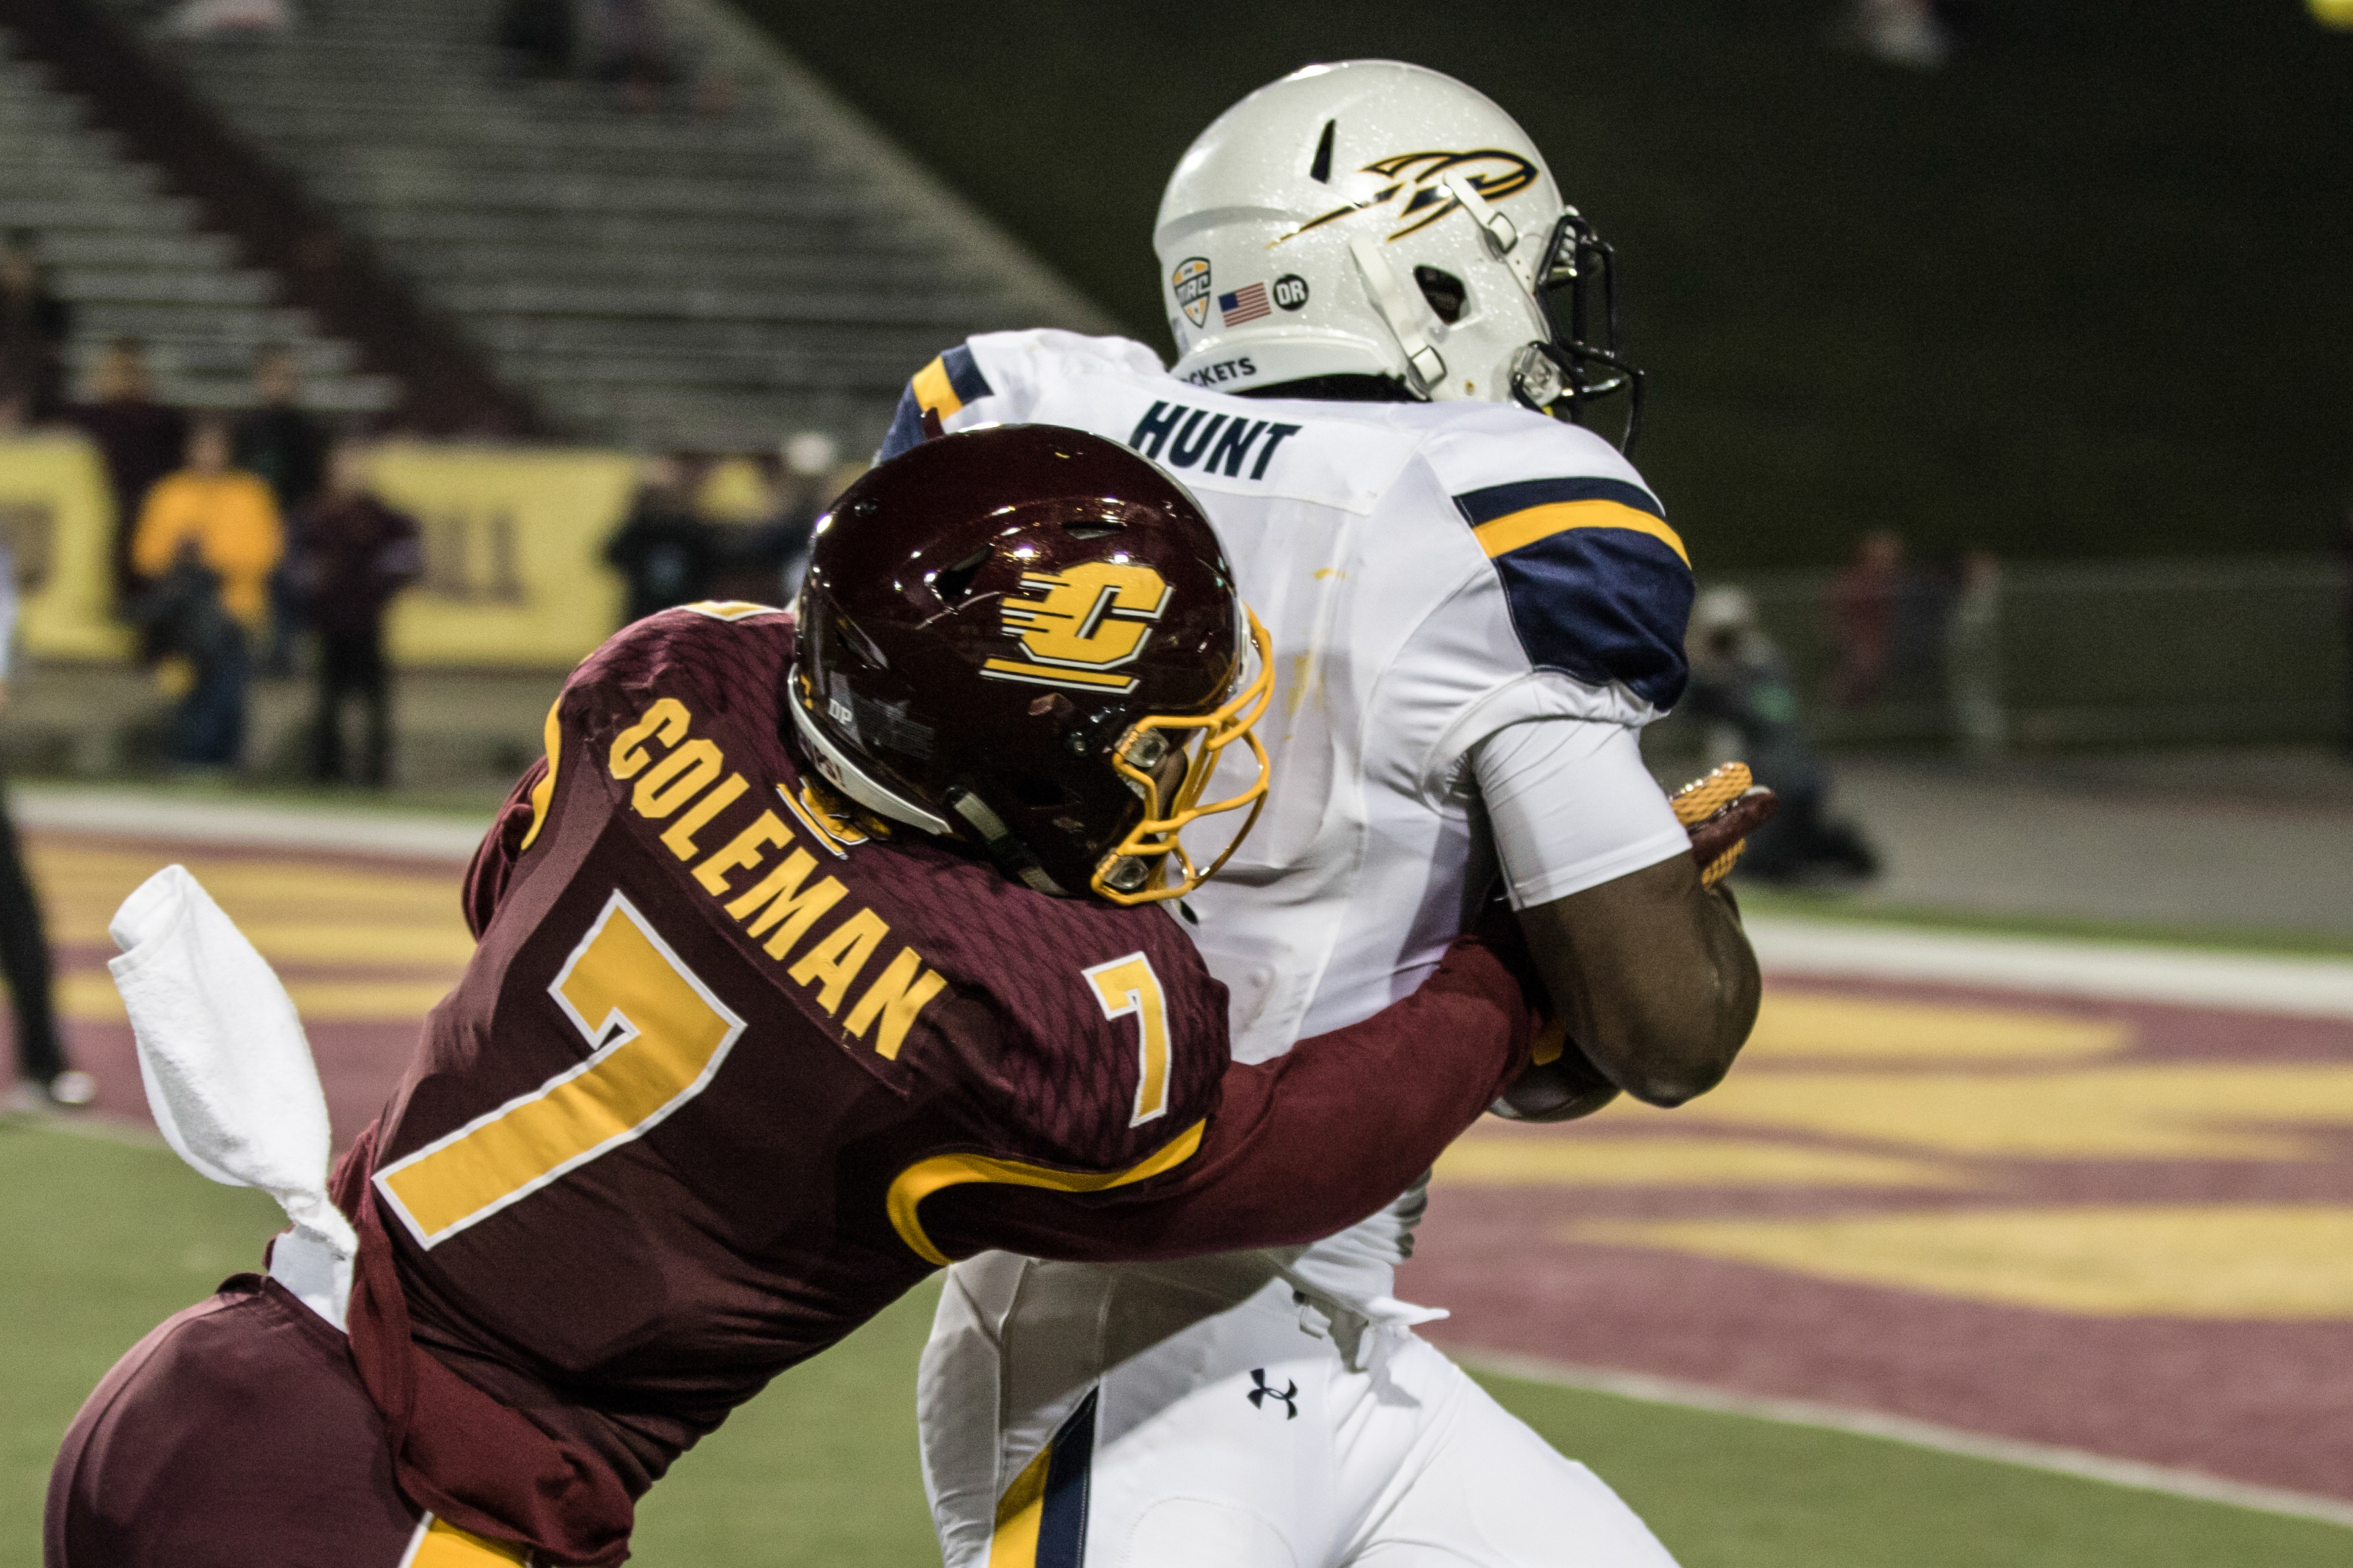 finest selection 9f359 1054a Photo Story: Chippewas Fall to Toledo 28-23 | Grand Central ...